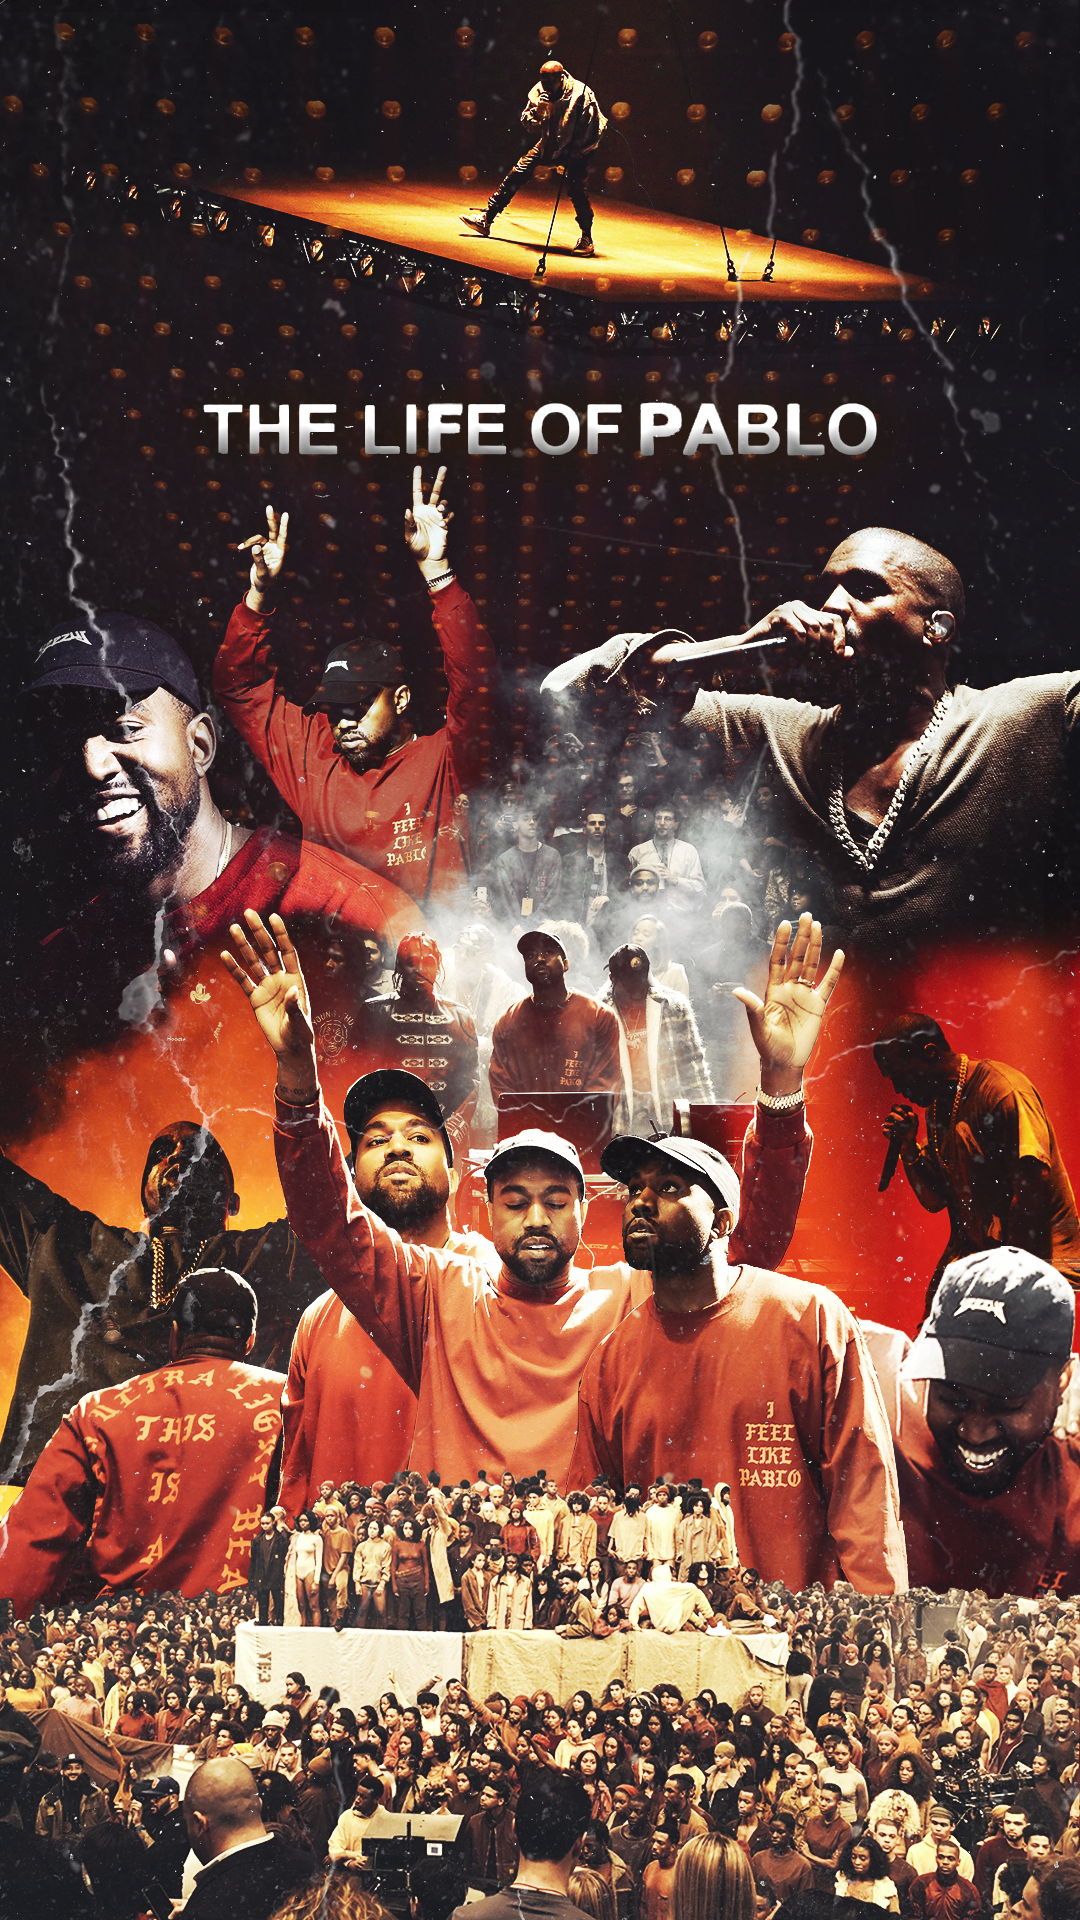 The Life Of Pablo Aesthetic Kanye West Wallpaper Poster In 2021 Kanye West Wallpaper Kanye West Album Cover Kanye West Albums